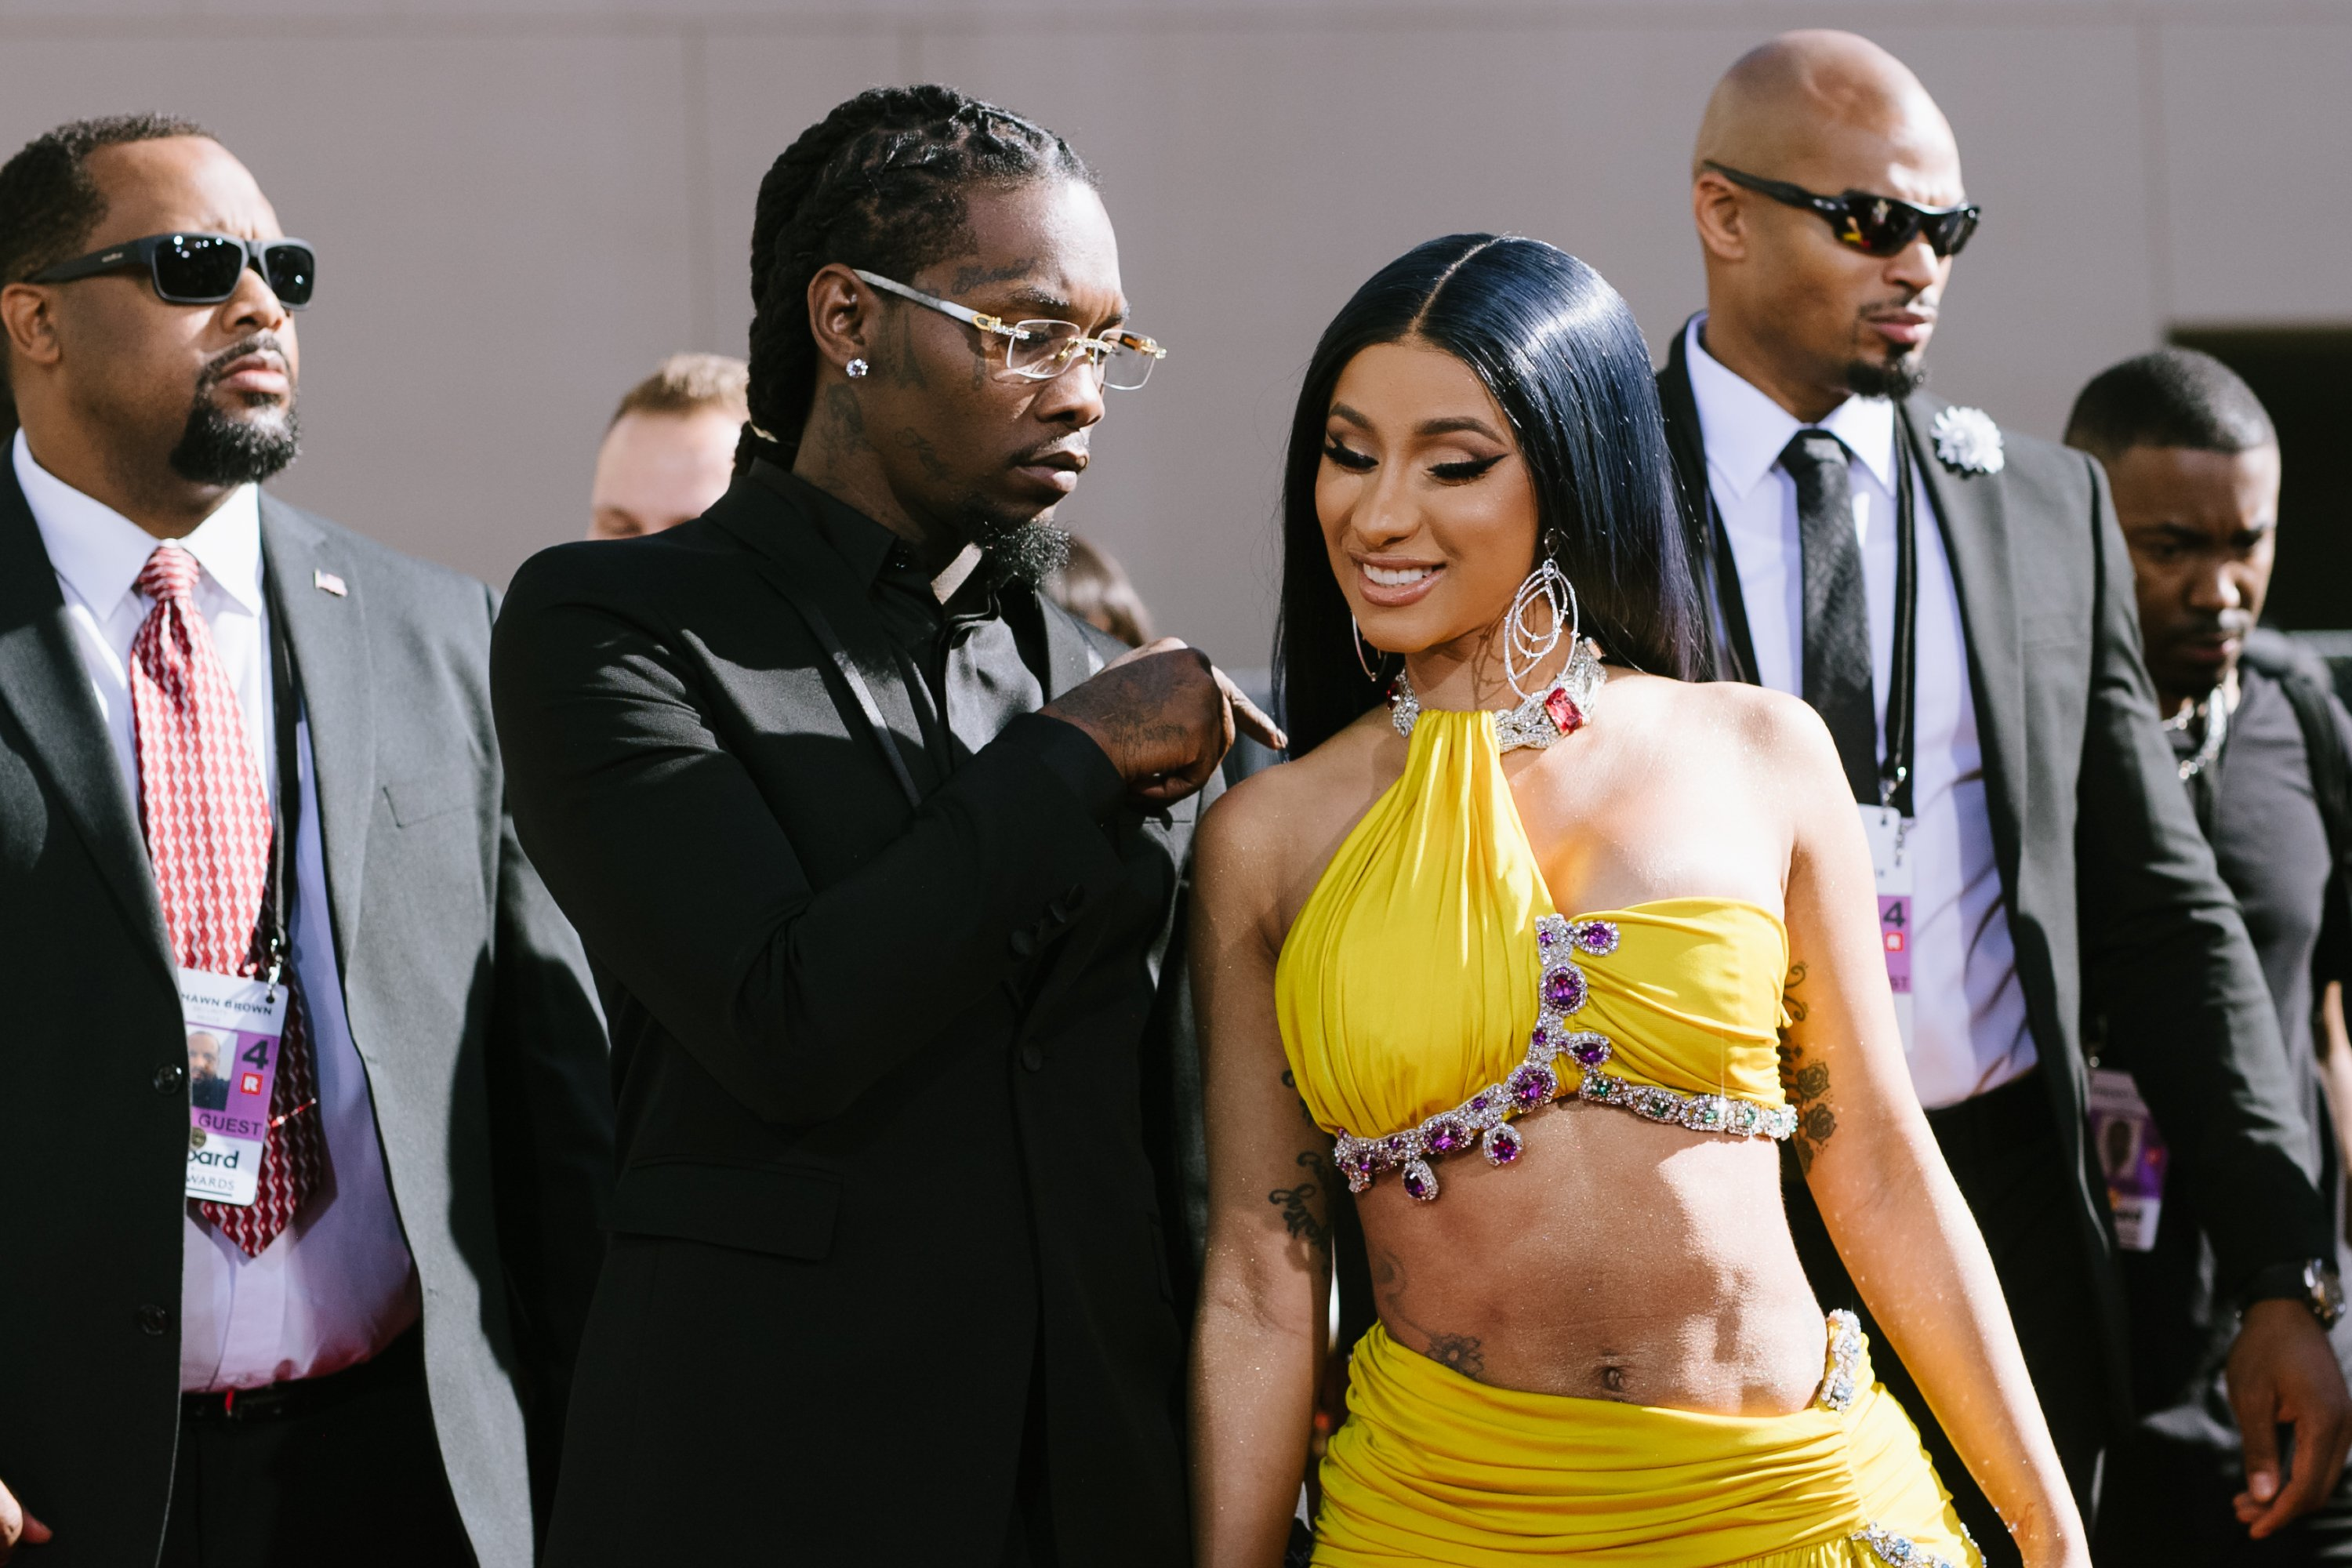 Offset and Cardi B arrive at the 2019 Billboard Music Awards at MGM Grand Garden Arena on May 01, 2019. | Photo: GettyImages